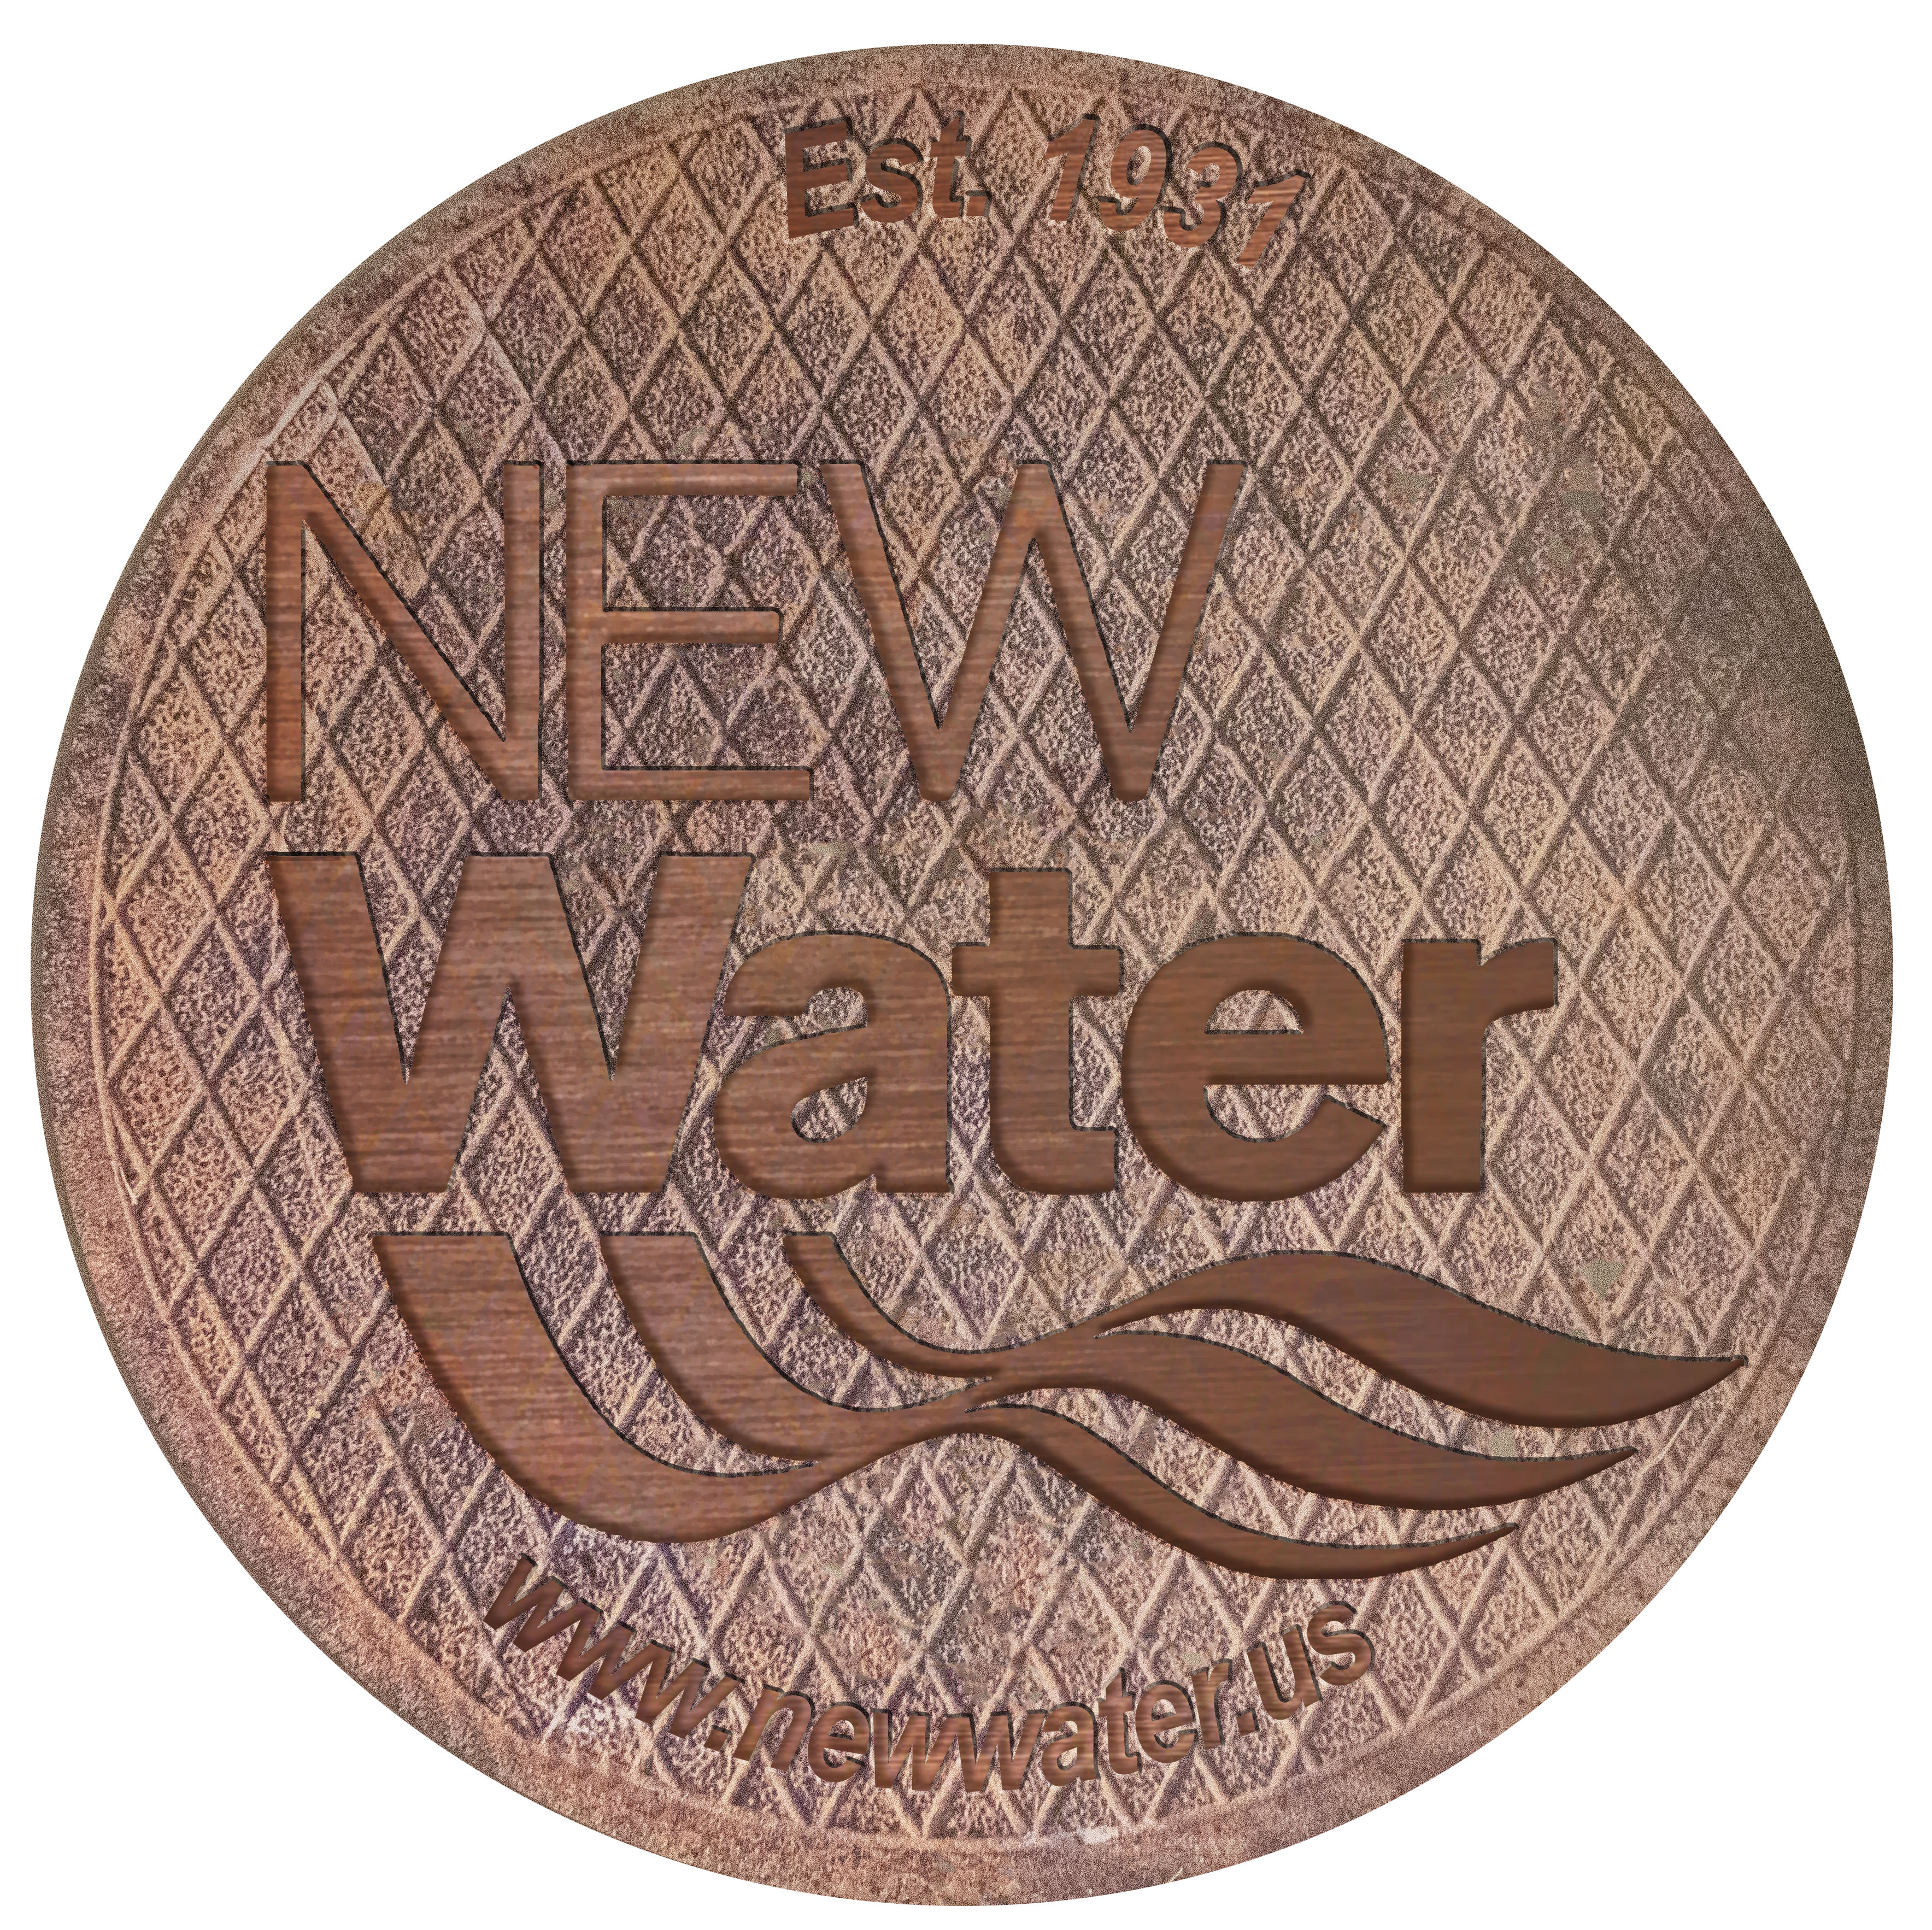 NEW Water Man hole